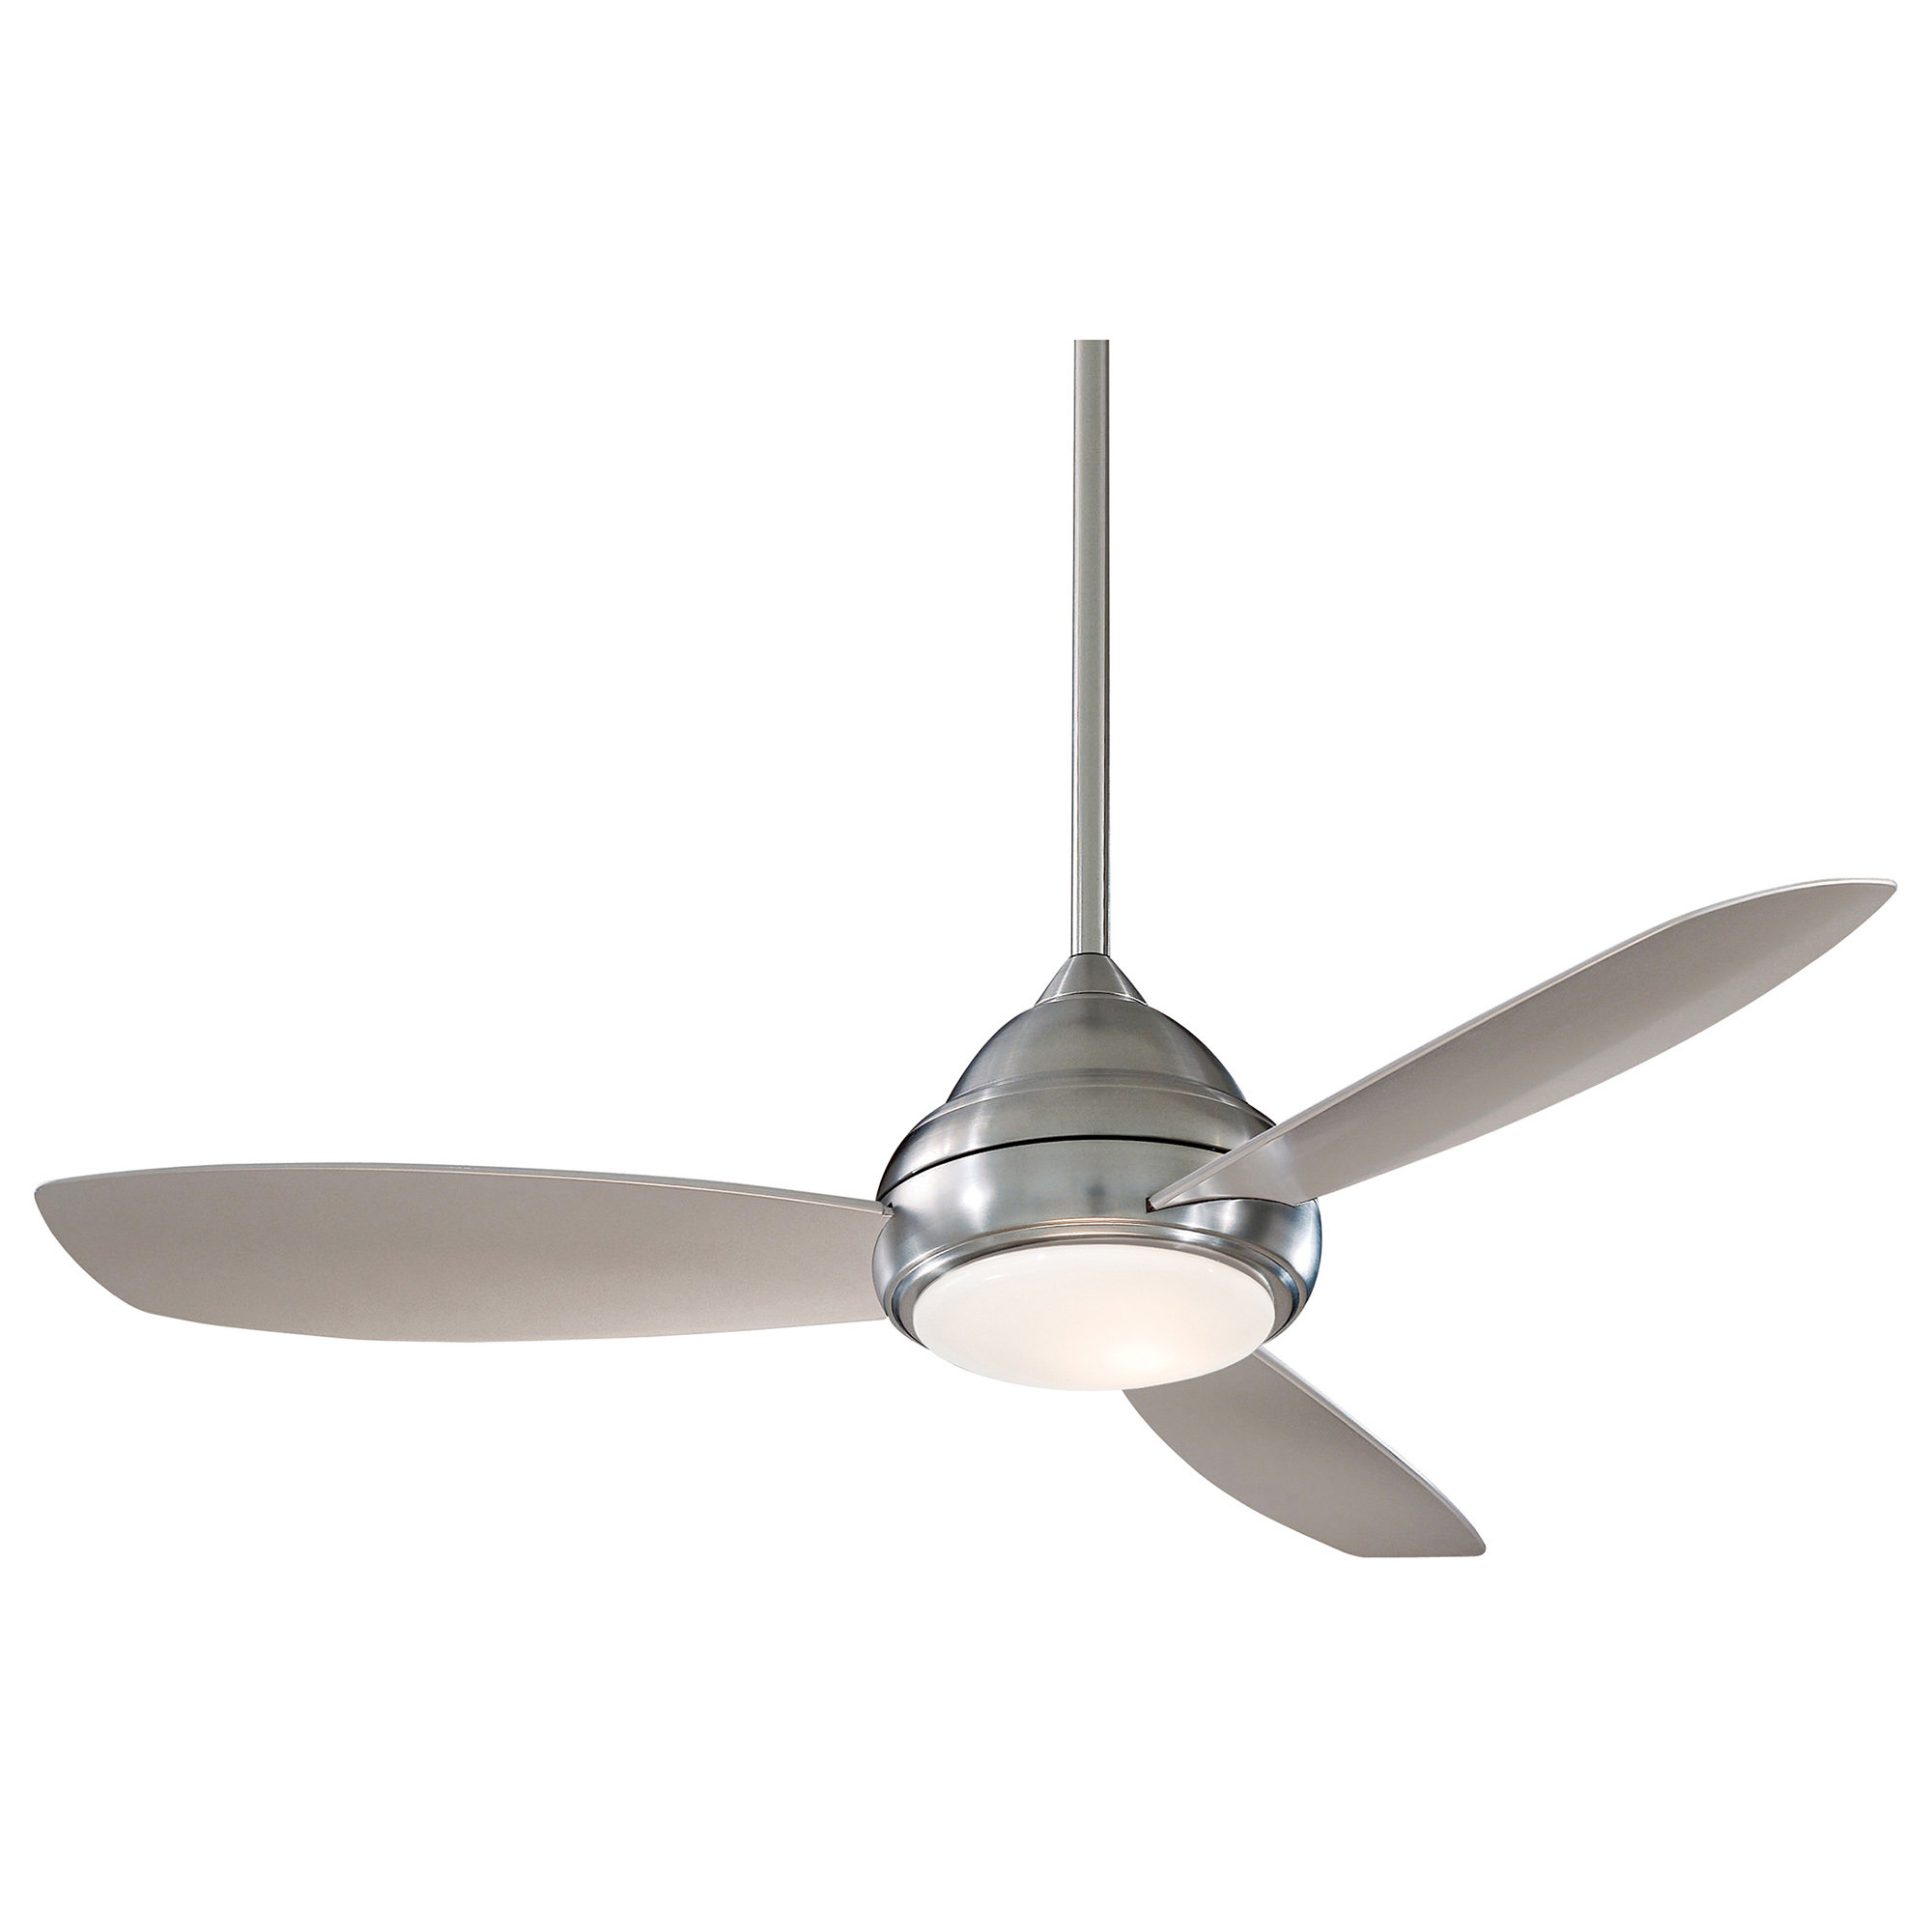 "52"" Concept 3 Blade Ceiling Fan With Remote In Latest Acero Retro 3 Blade Led Ceiling Fans (View 7 of 20)"